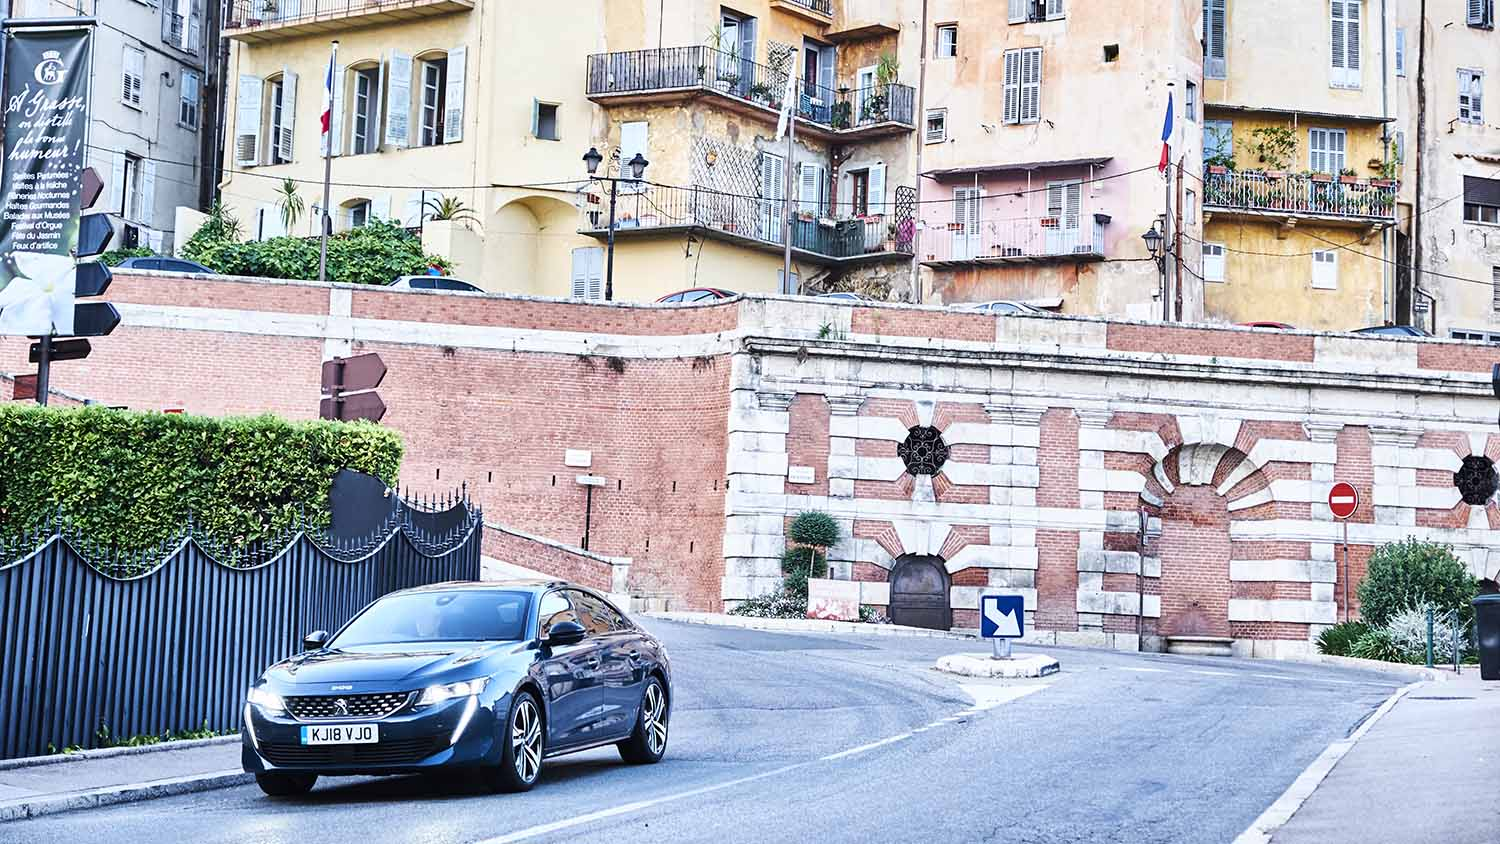 The 508 explores the streets of Grasse